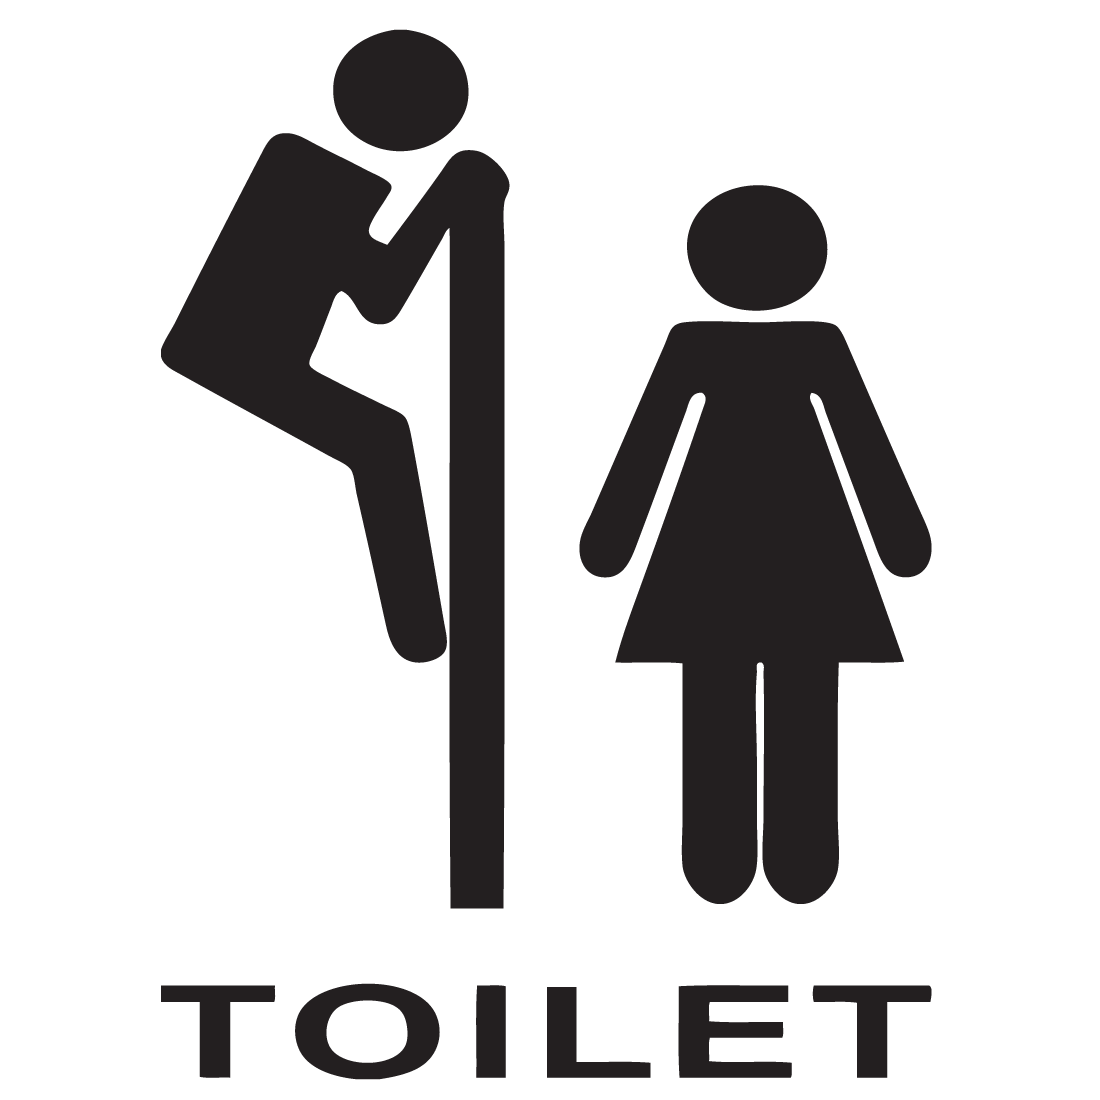 Vinilos para bares de bao buscar con google things to wear new bathroom sign biocorpaavc Choice Image